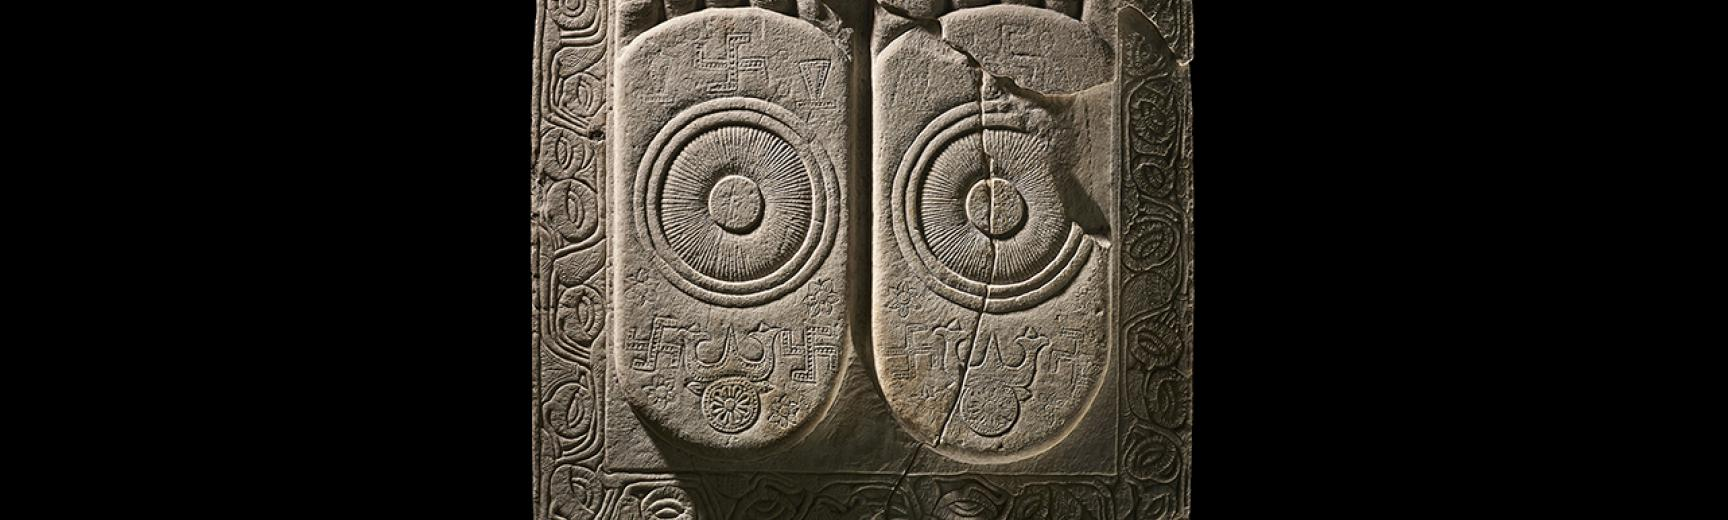 Imagining the Divine – Press Image – Footprints of the Buddha © Trustees of the British Museum